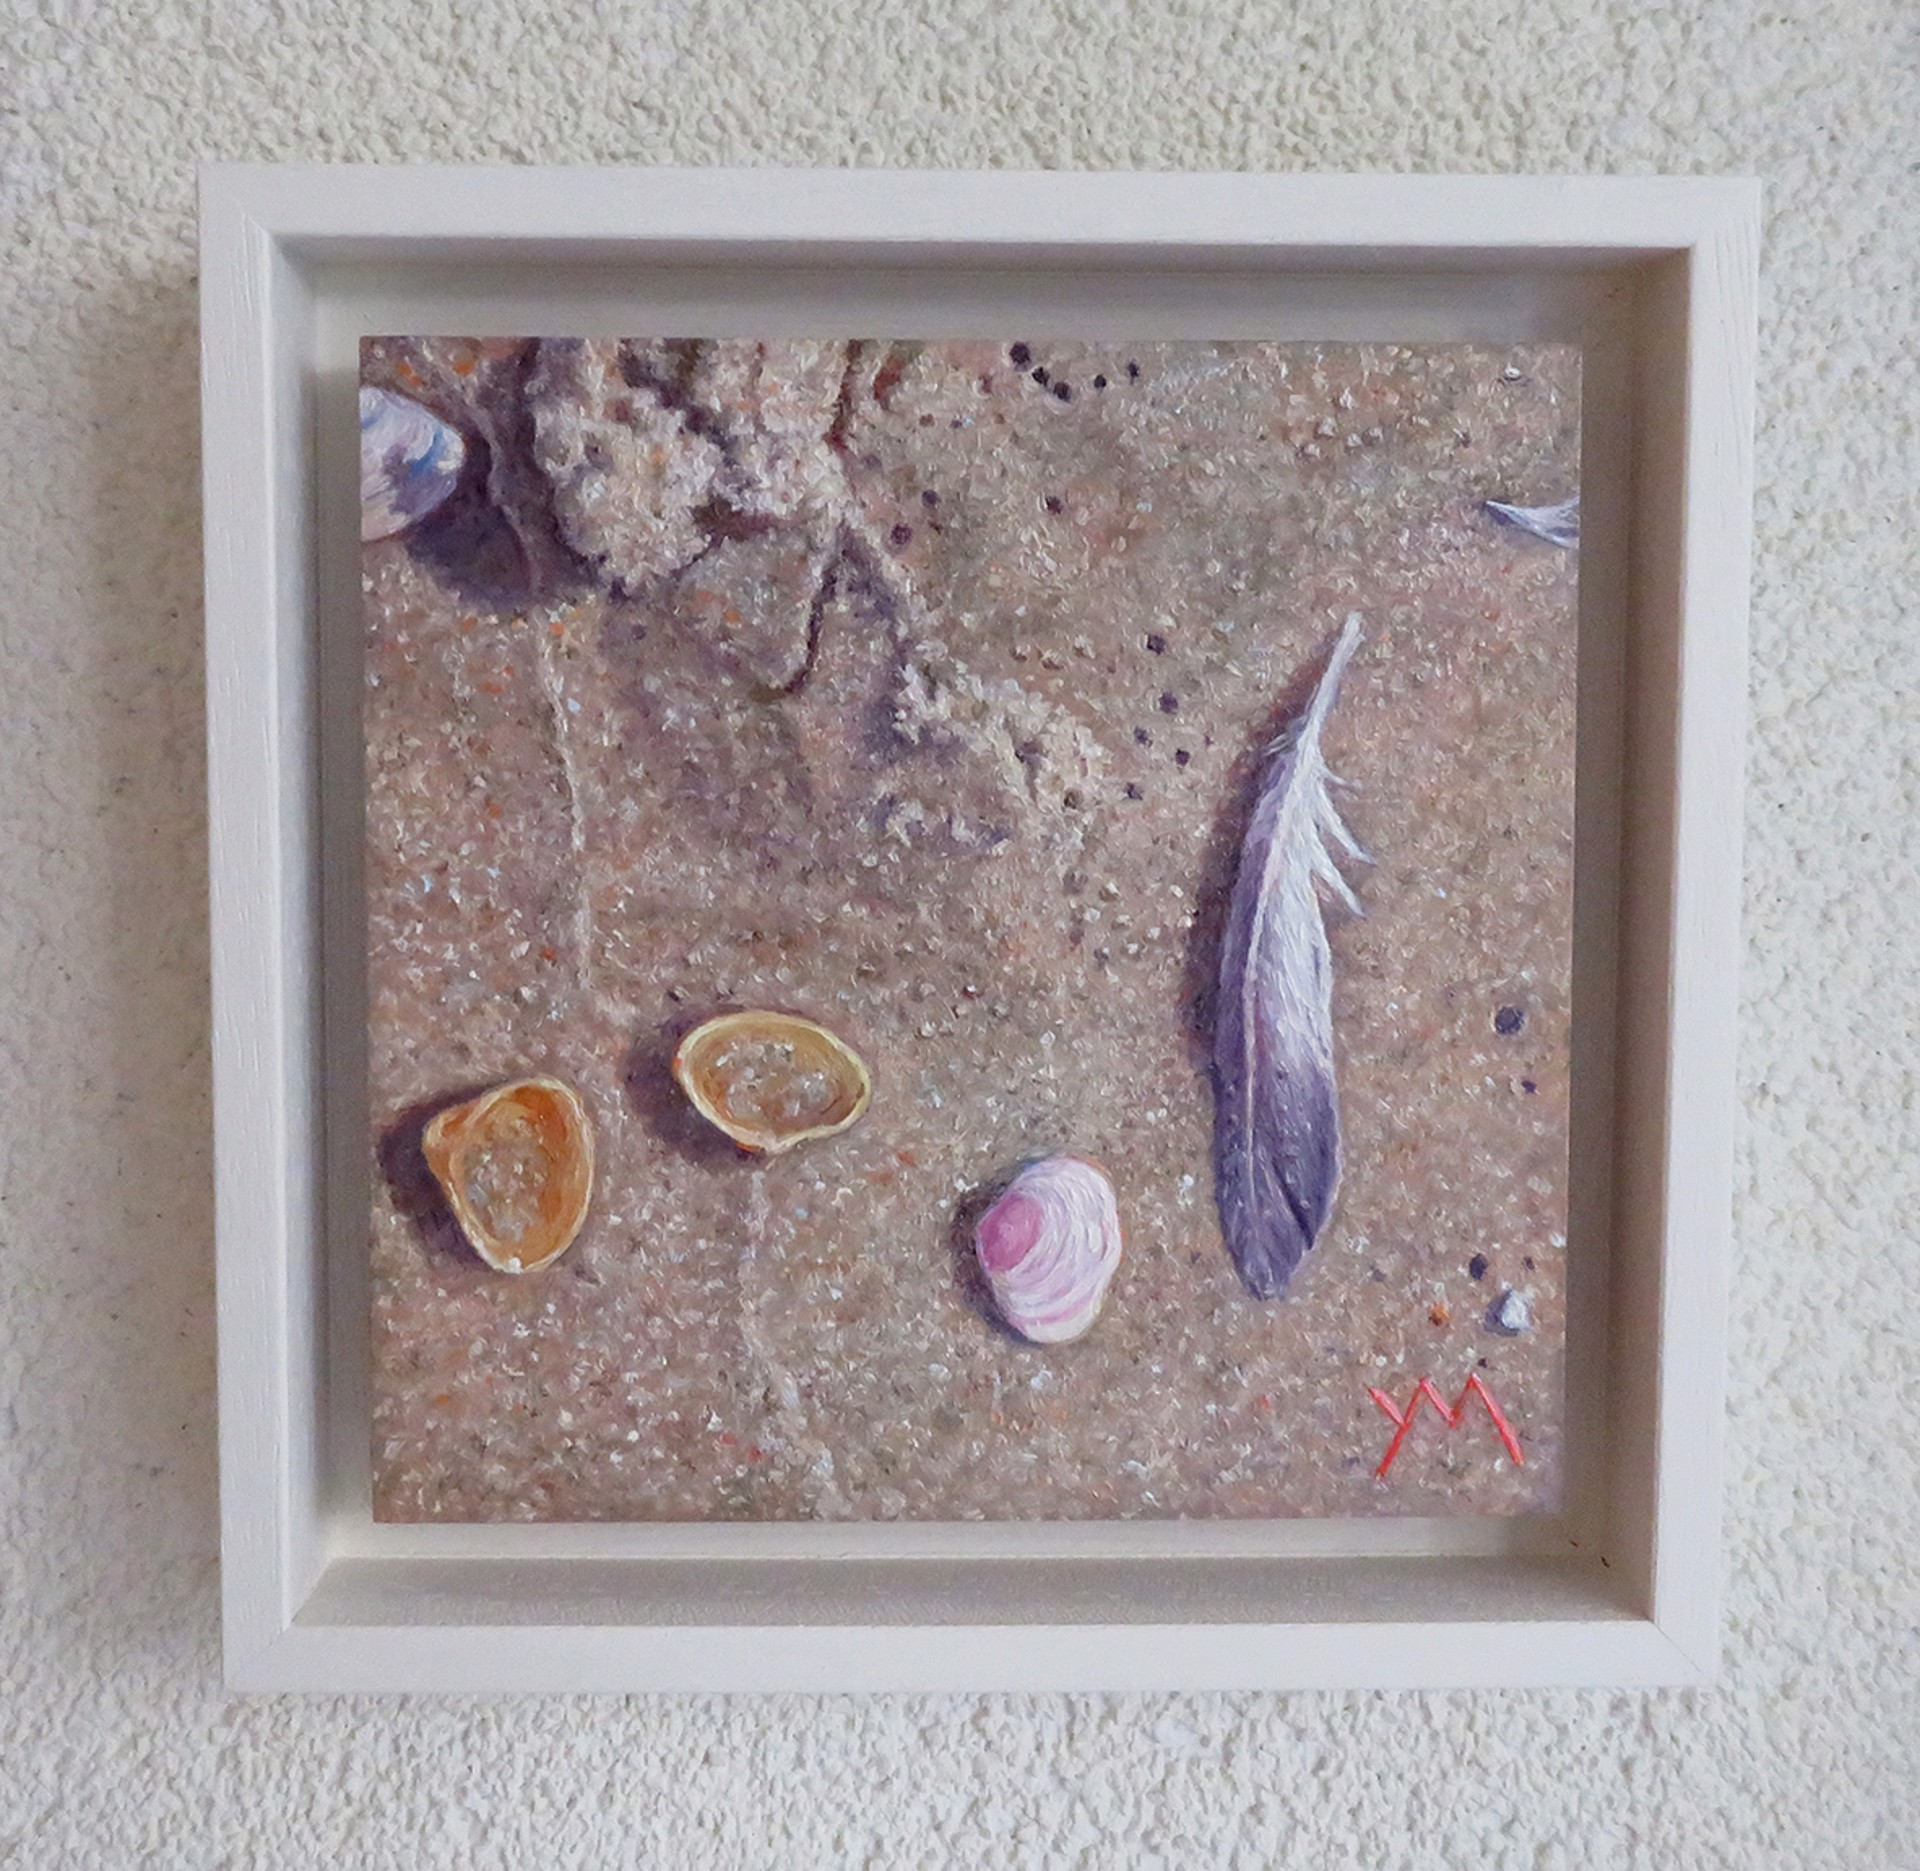 Washed Ashore North Sea Beach III by Yvonne Melchers